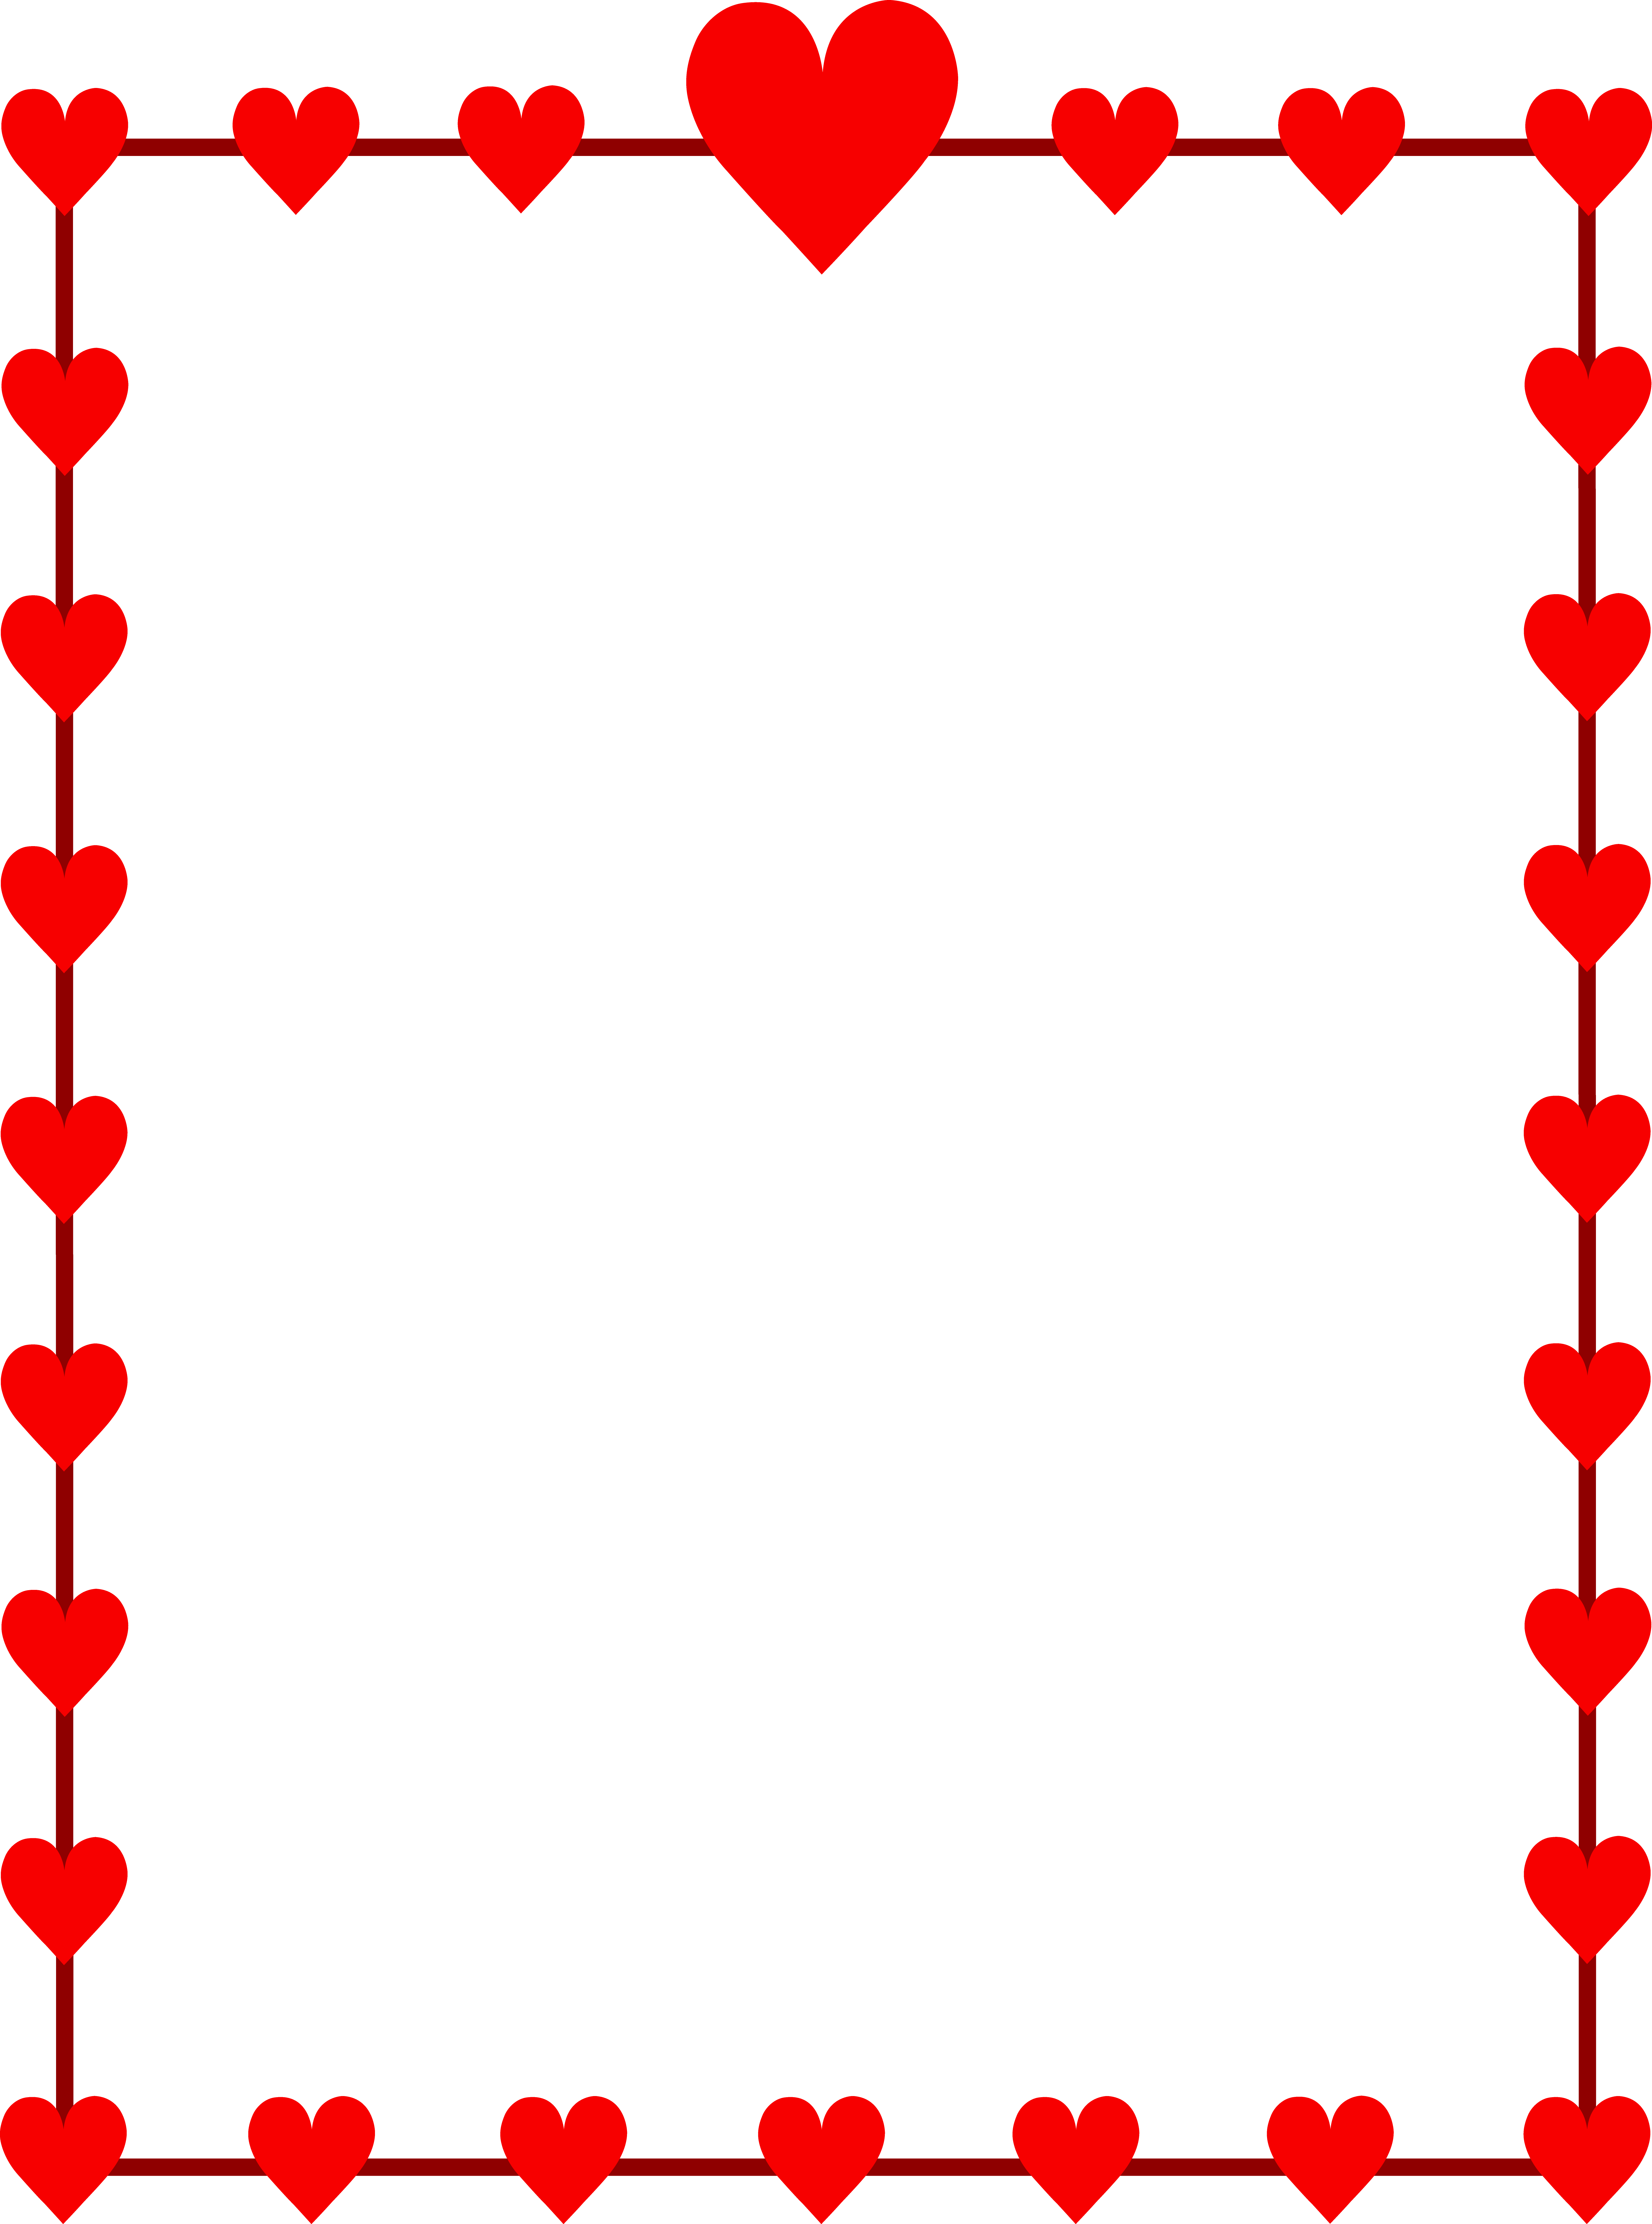 clip freeuse Red hearts border frame. Free holiday clipart borders.